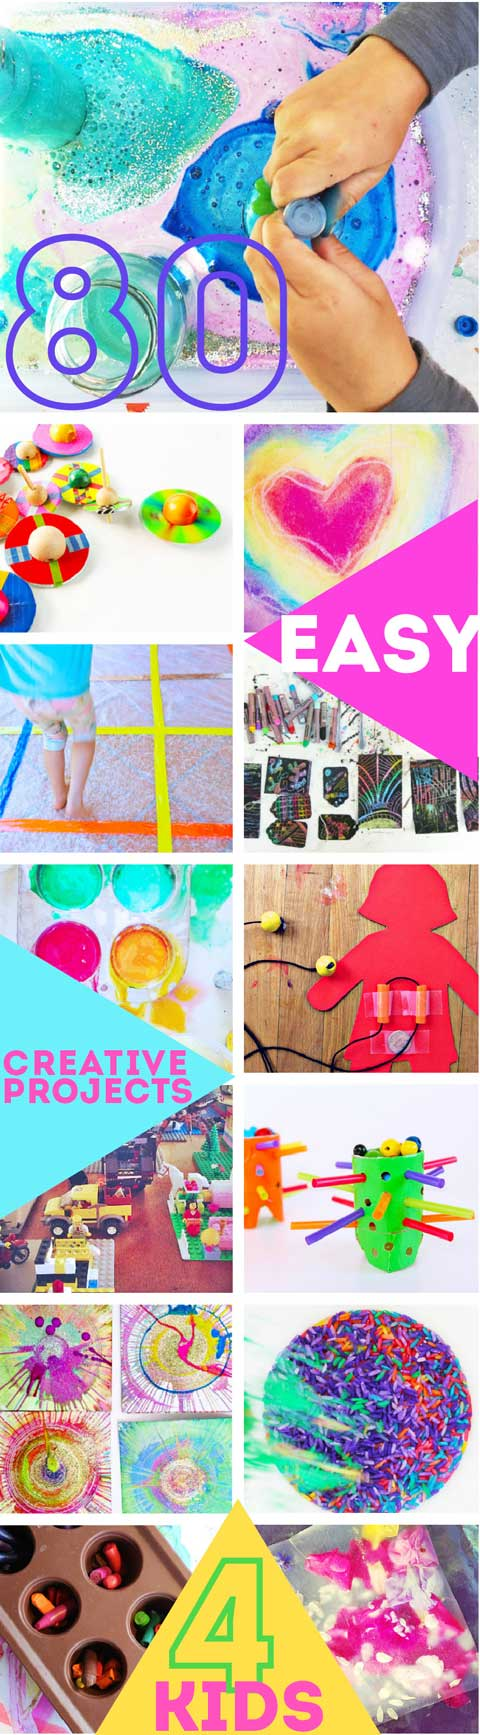 hight resolution of 80 easy creative projects for kids including activities art crafts science engineering